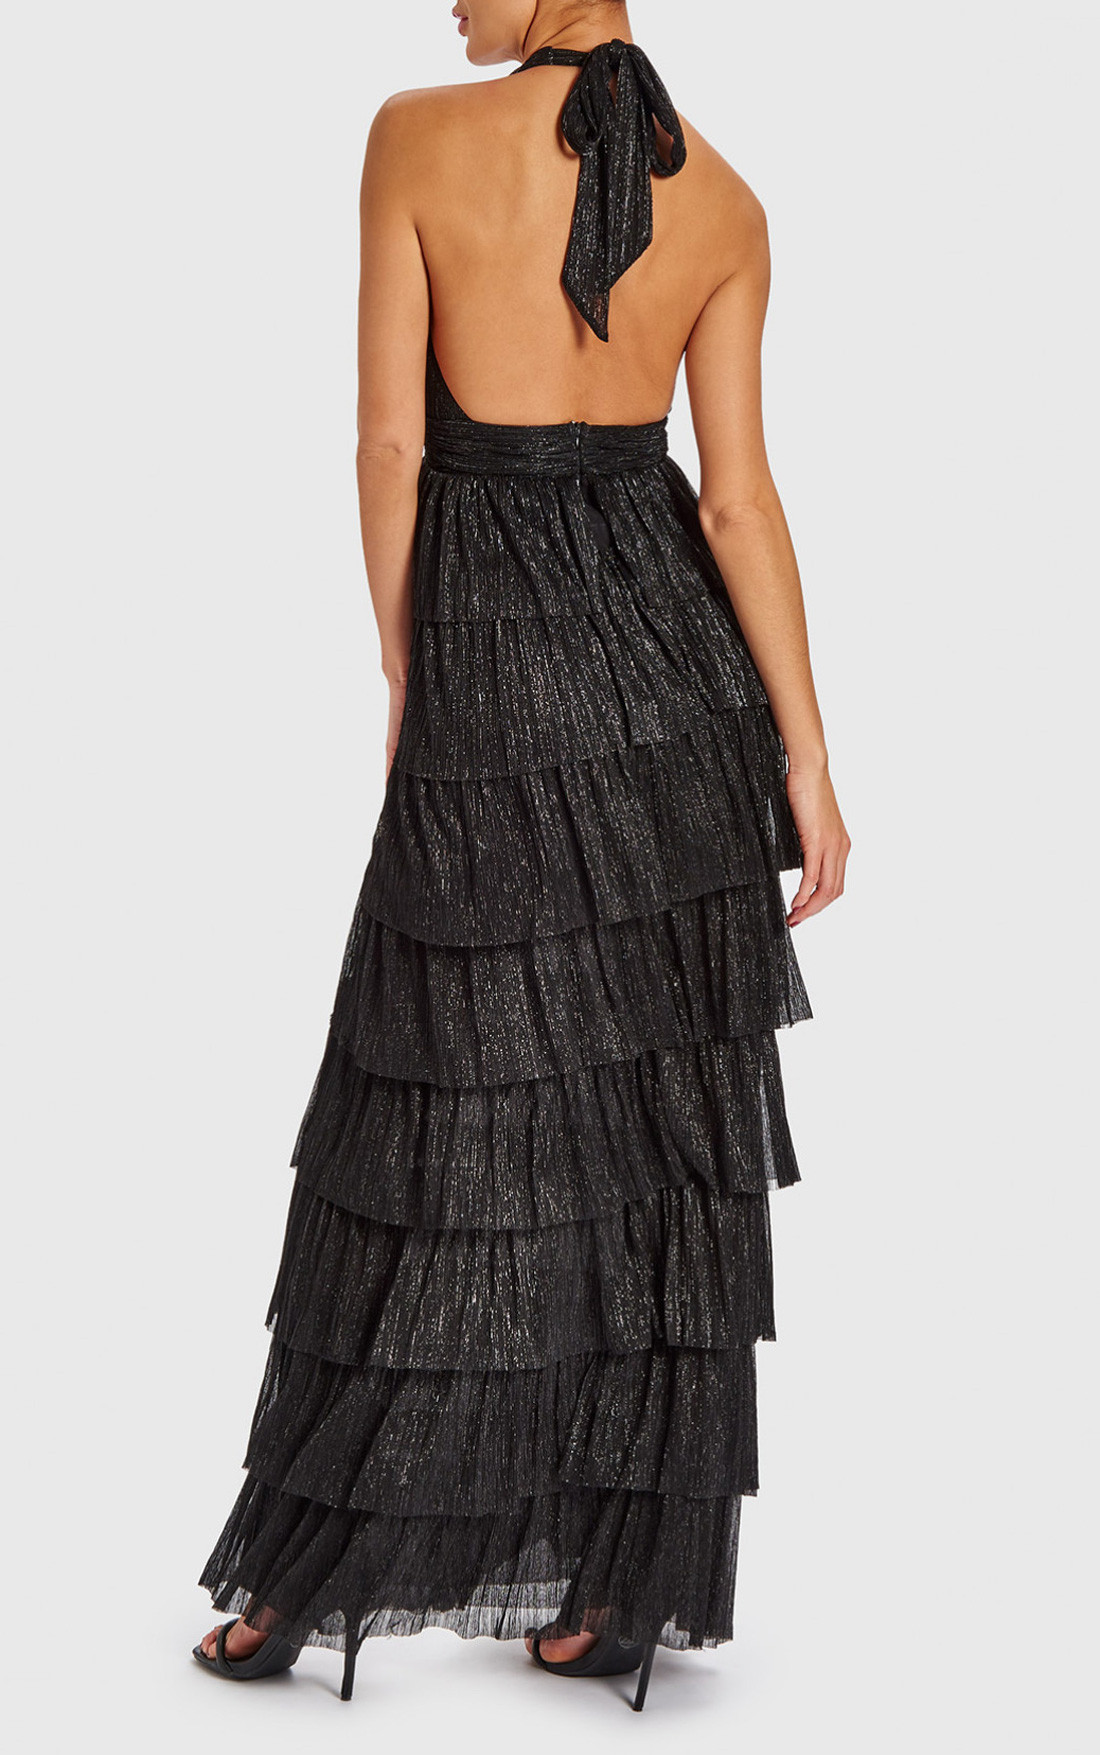 Forever Unique - Marleen Black Metallic Tiered Ruffle Maxi Dress (AB9701)